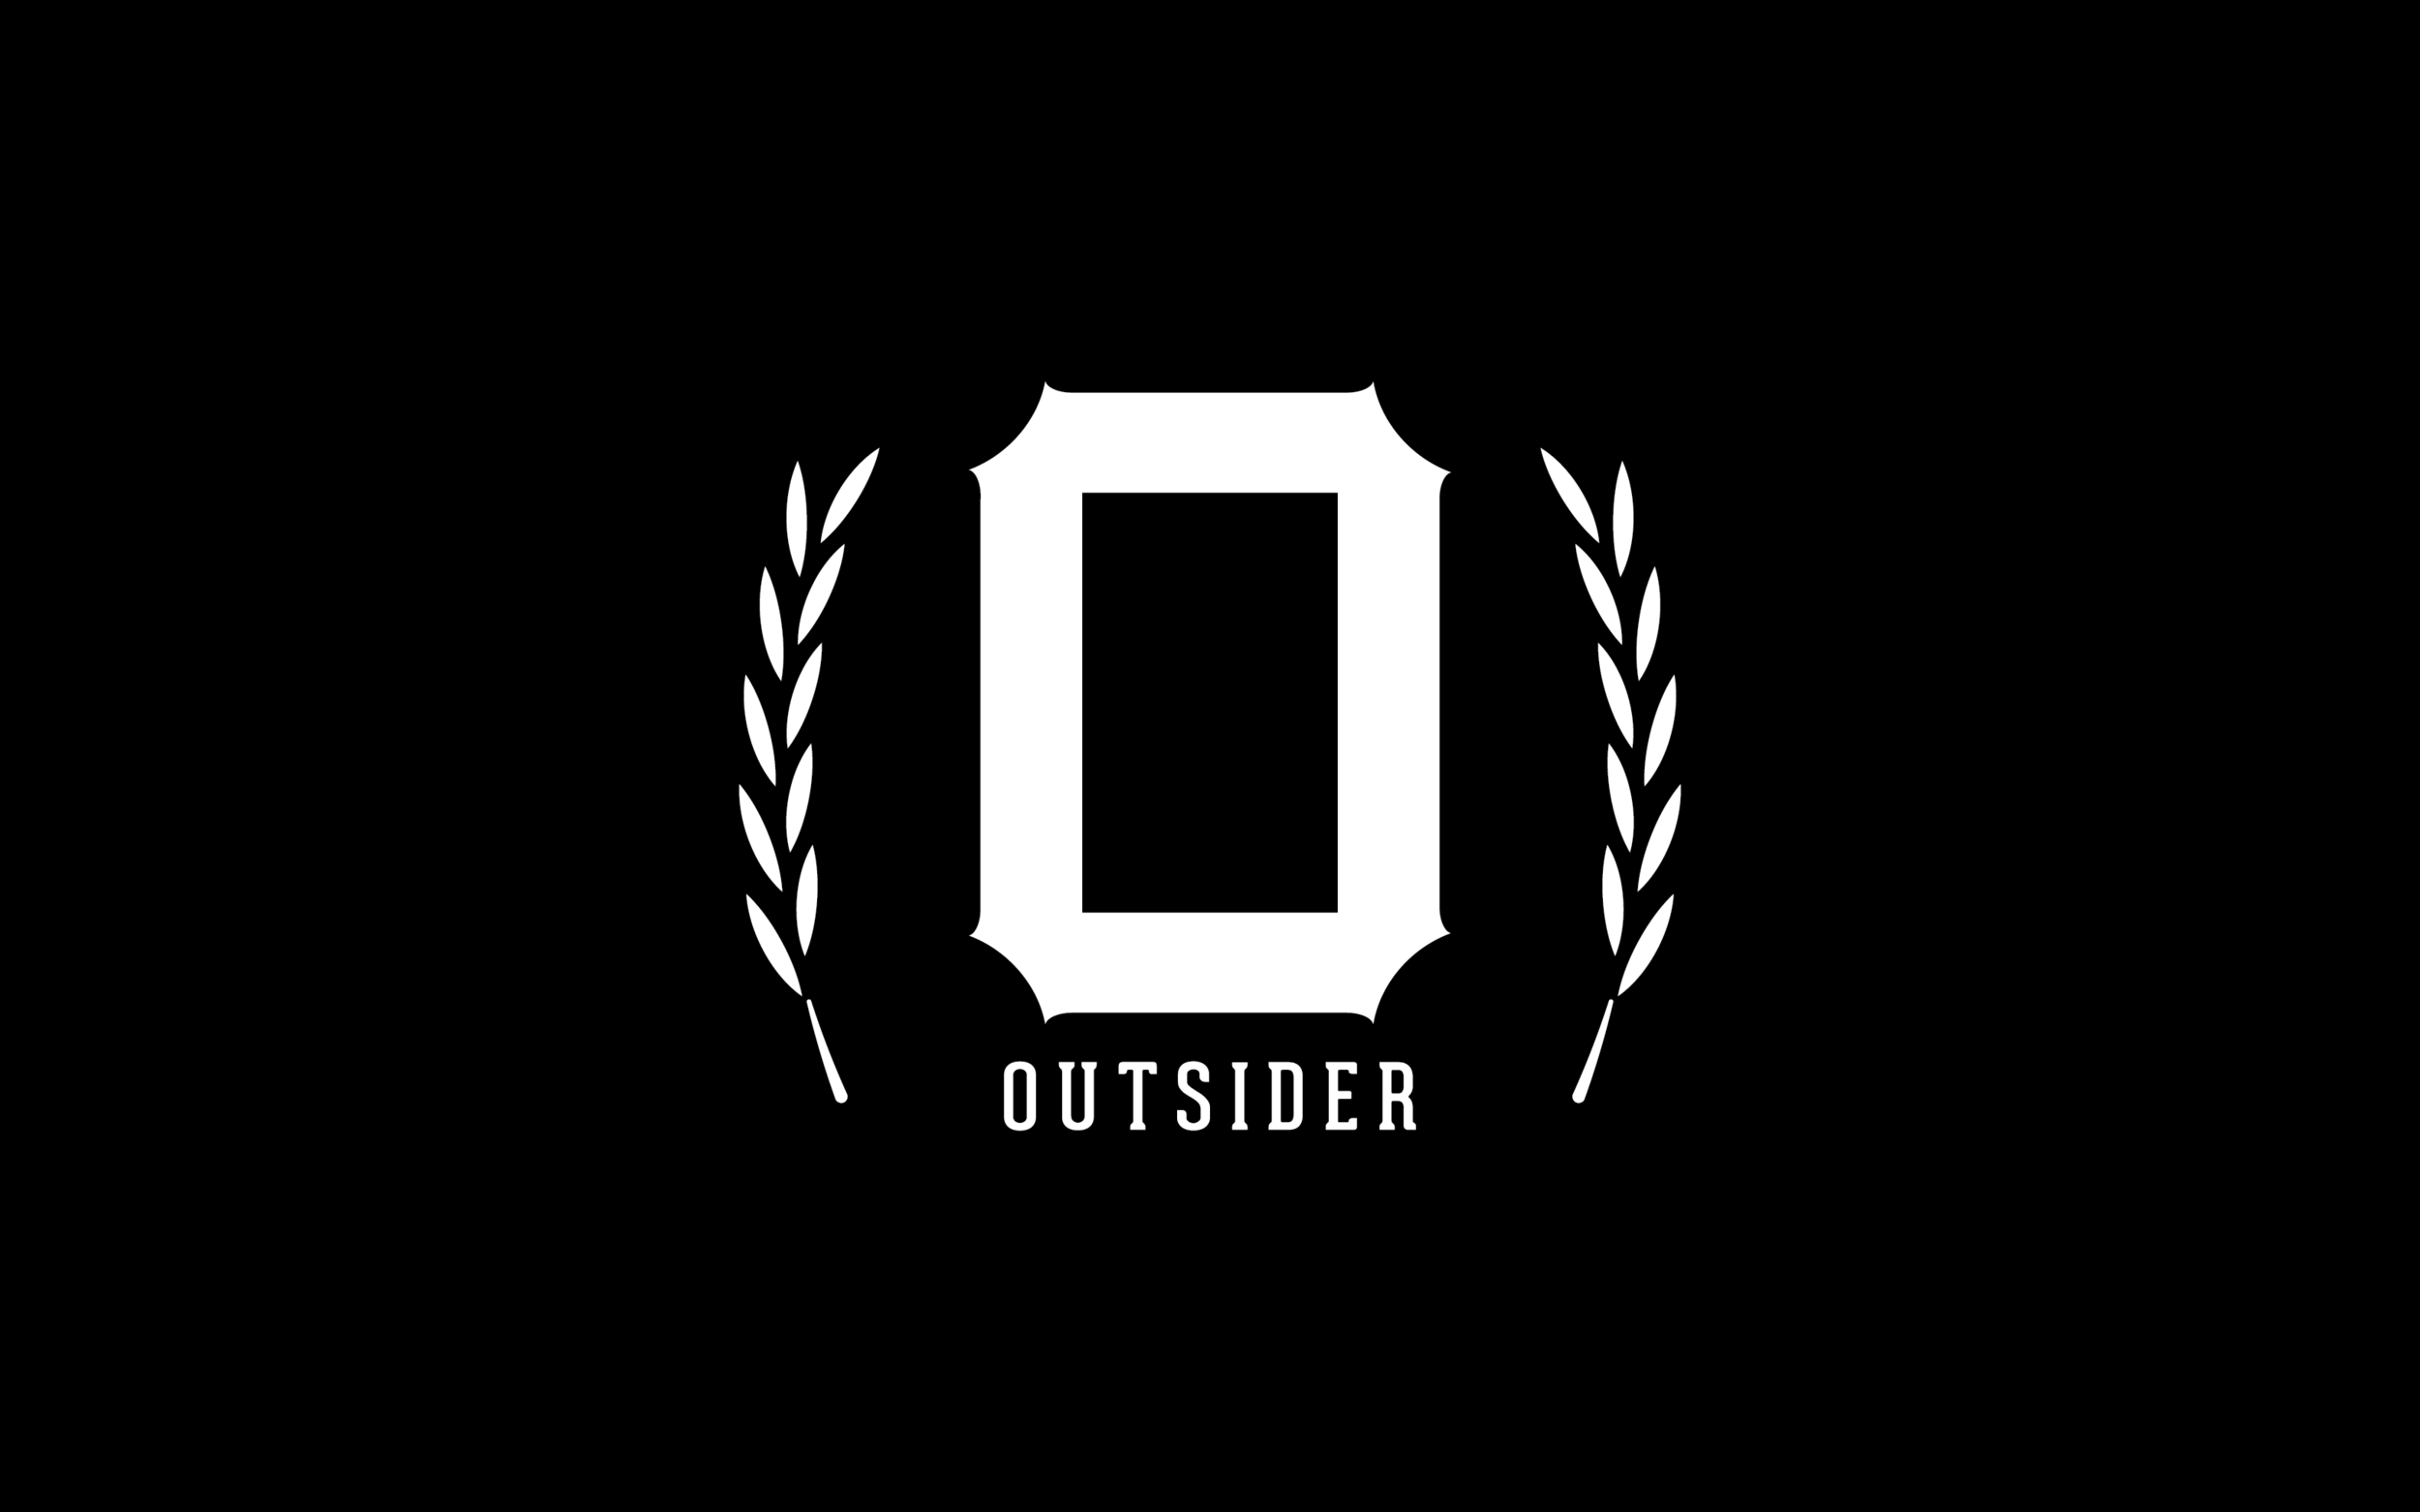 outsider.png